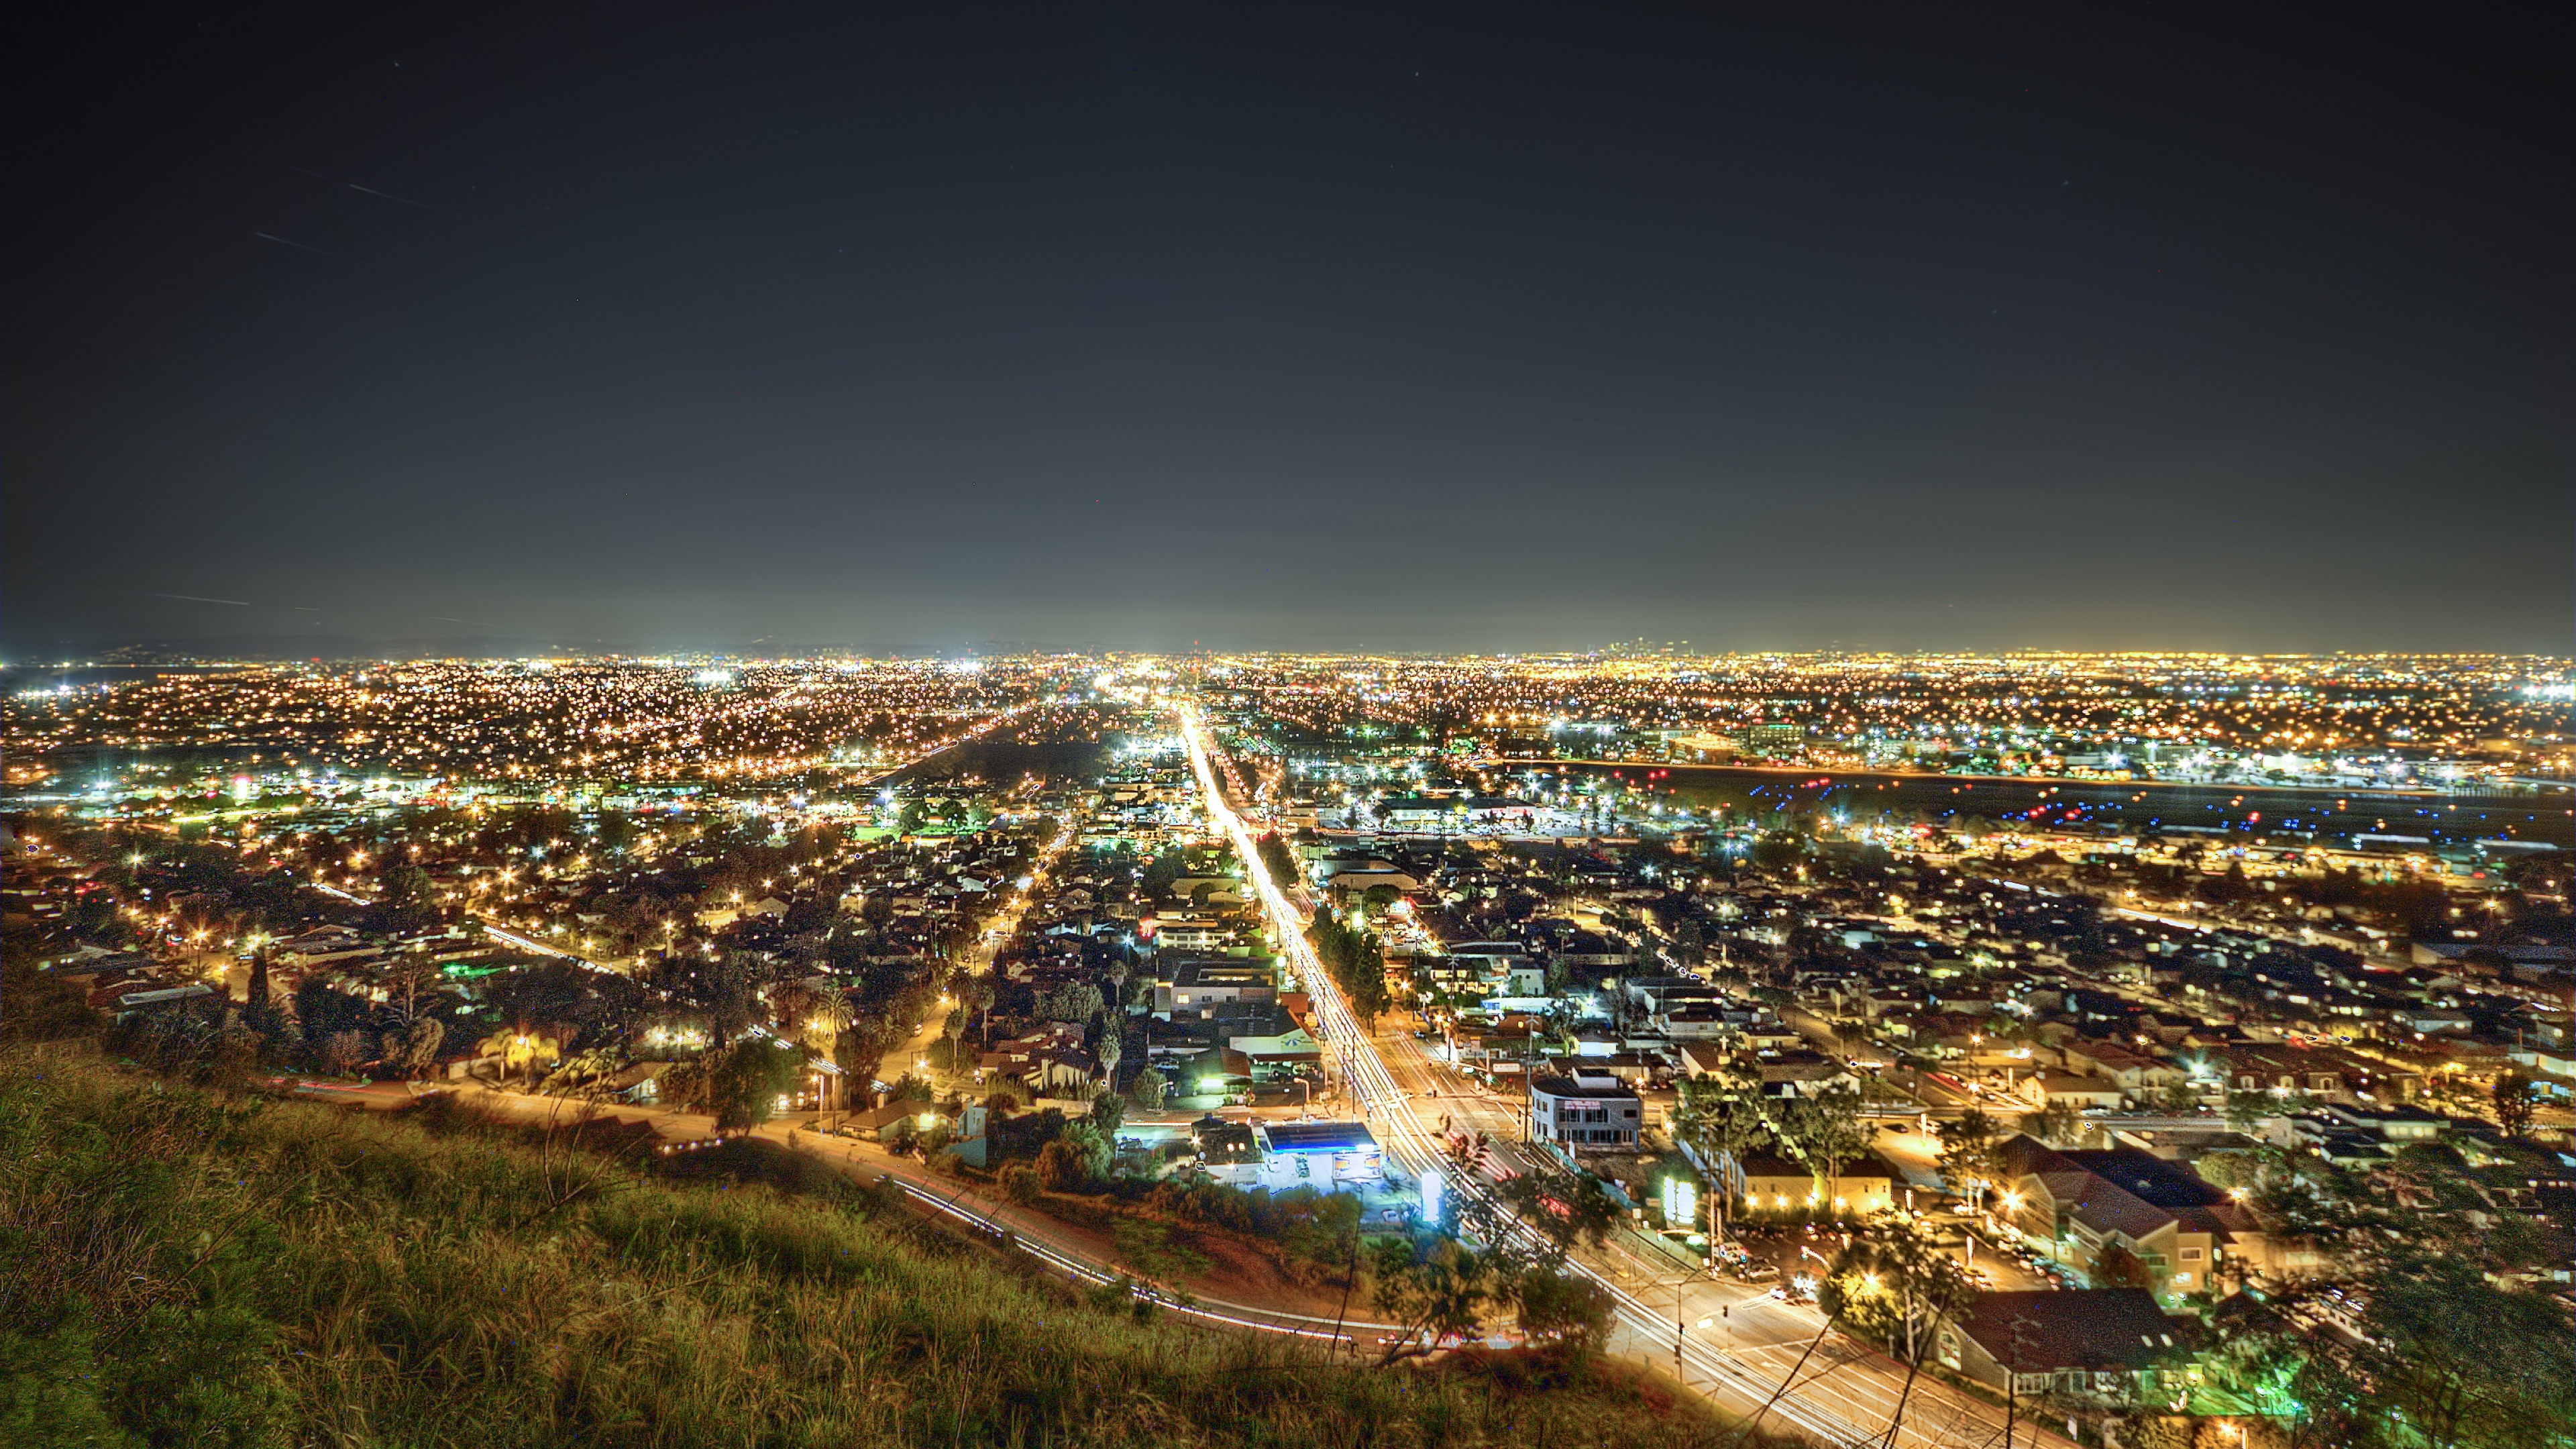 Download Wallpaper 3840x2160 los angeles california night 4K Ultra 3840x2160